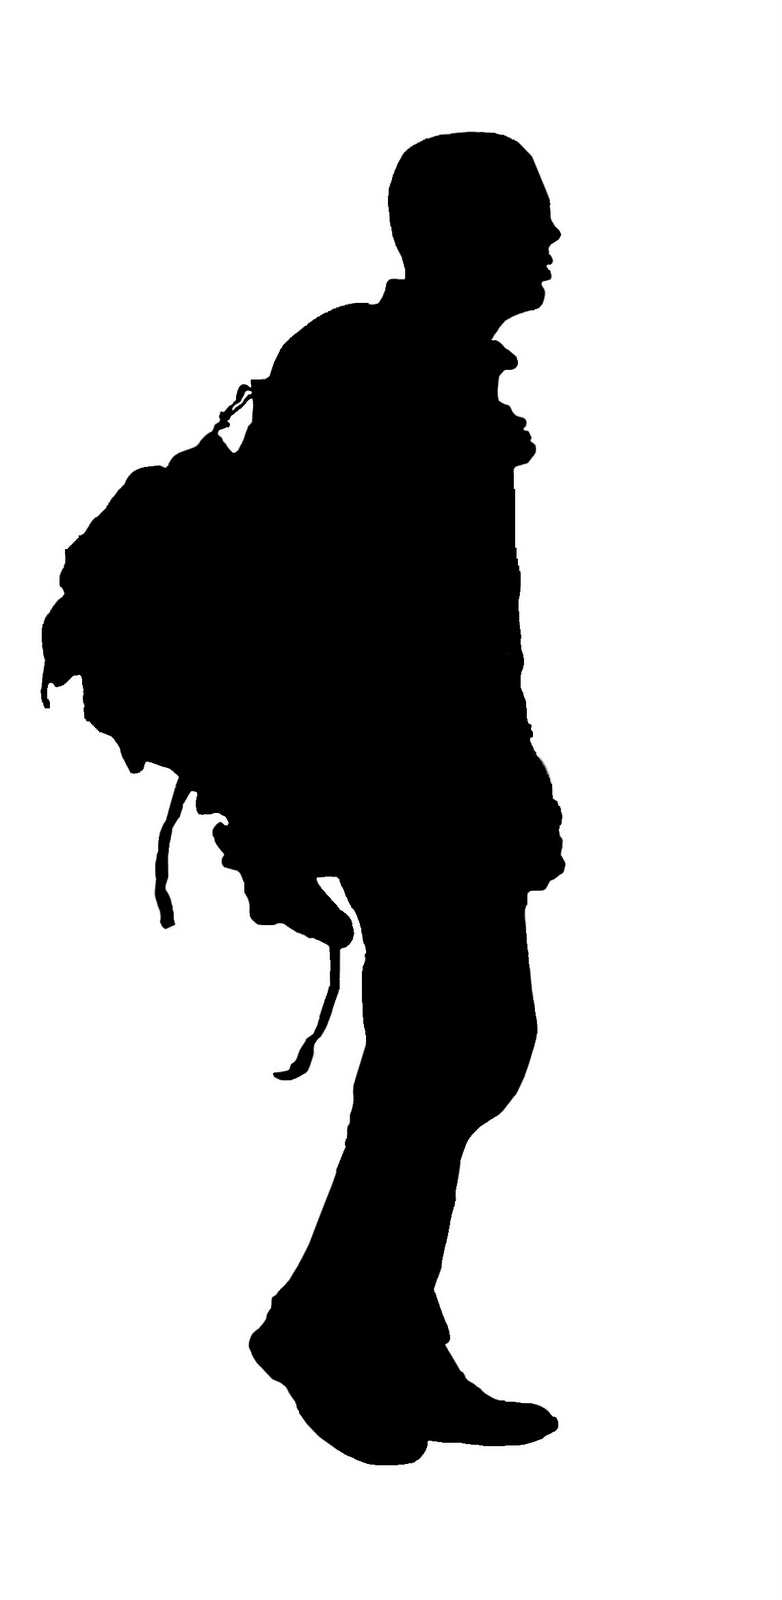 Free Silhouette Of A Man Walking, Download Free Clip Art.